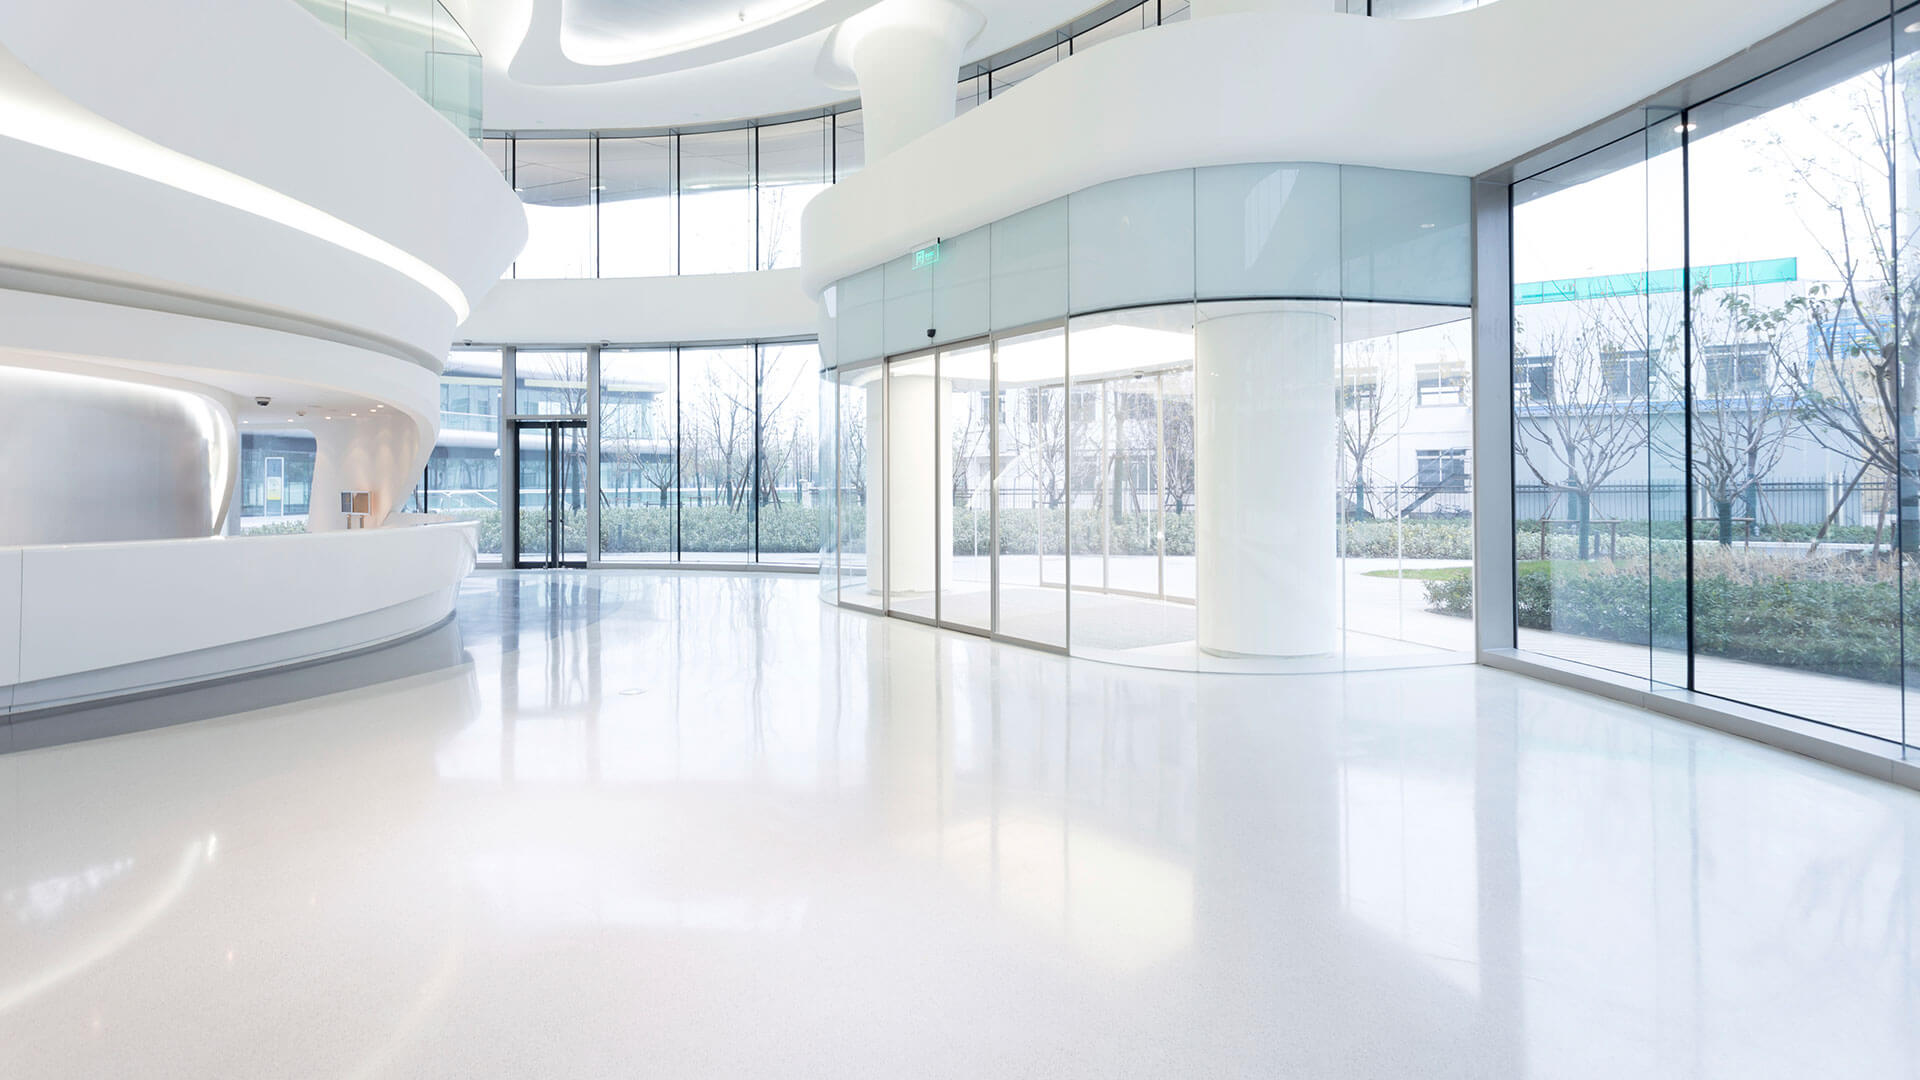 Commercial Cleaning Services Dubai